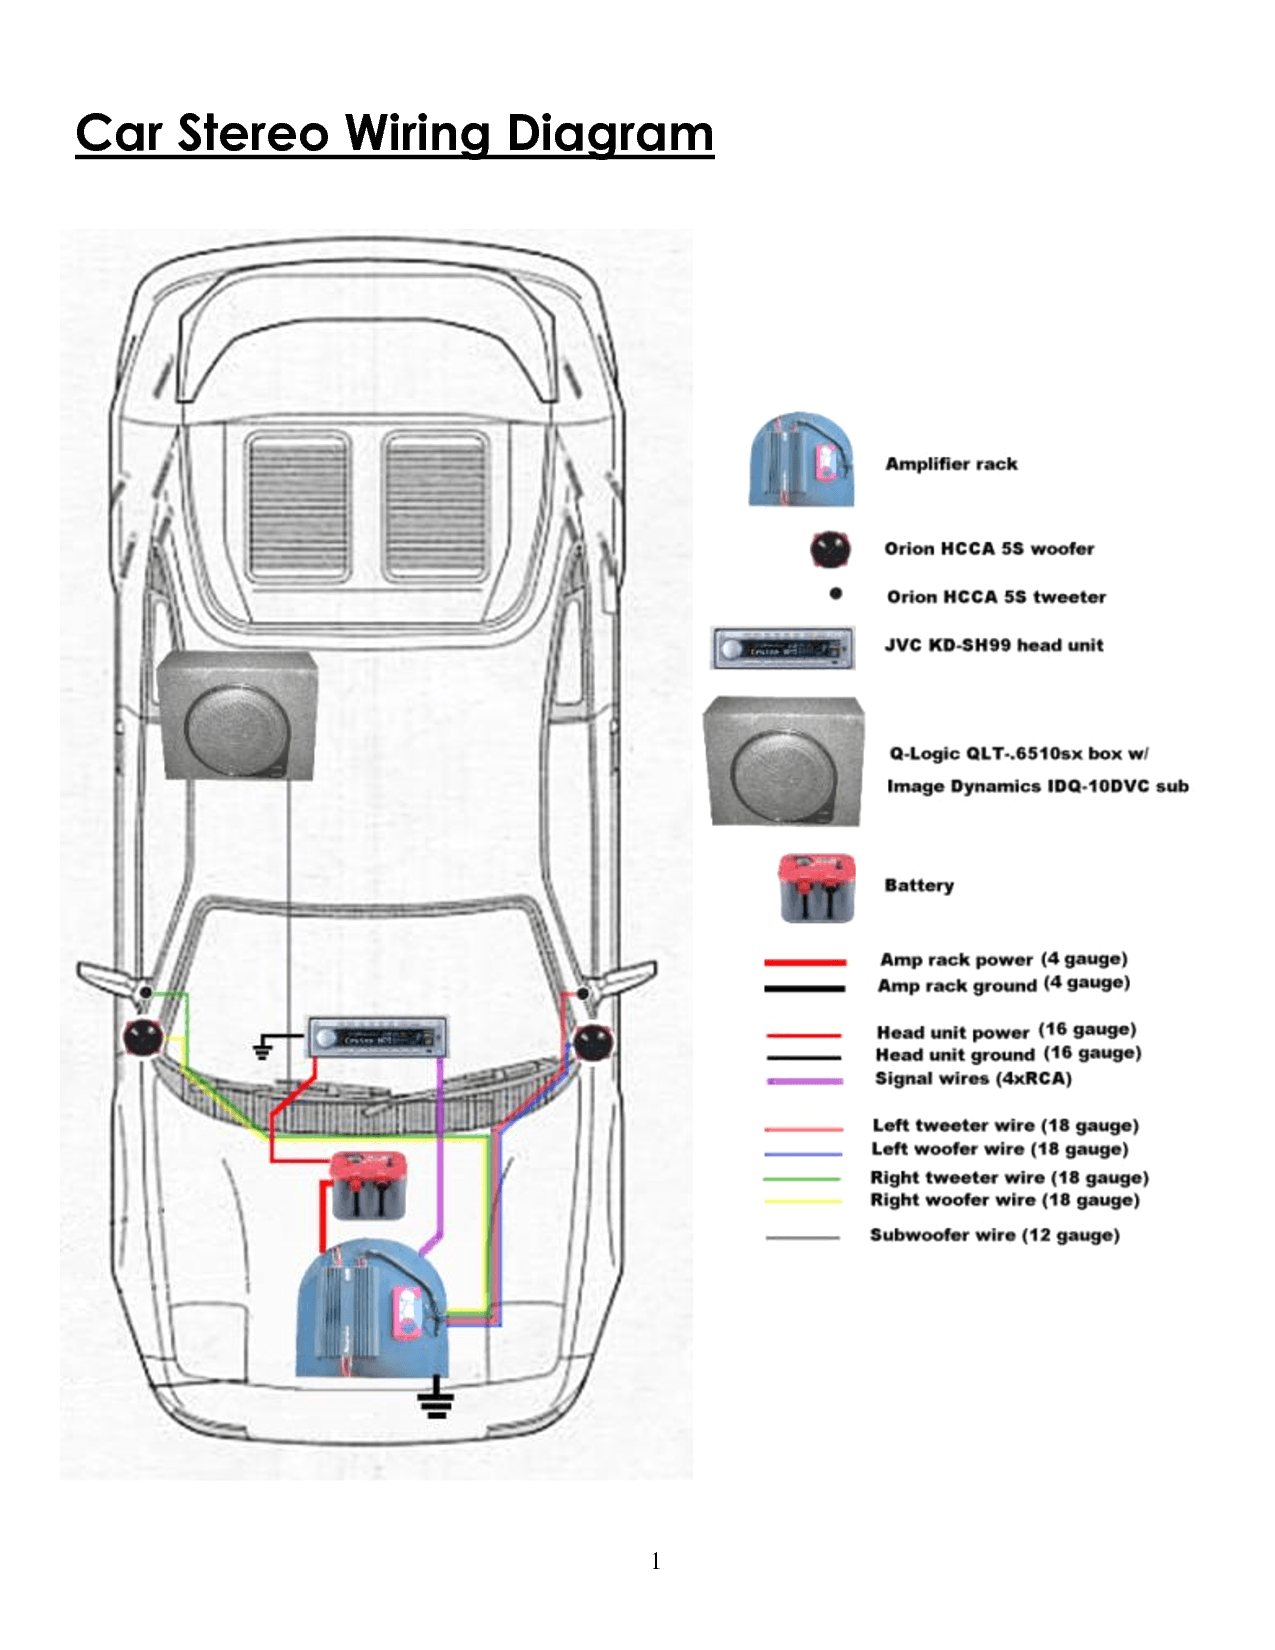 Wiring Diagram For A Car Stereo Amp And Subwoofer With Images